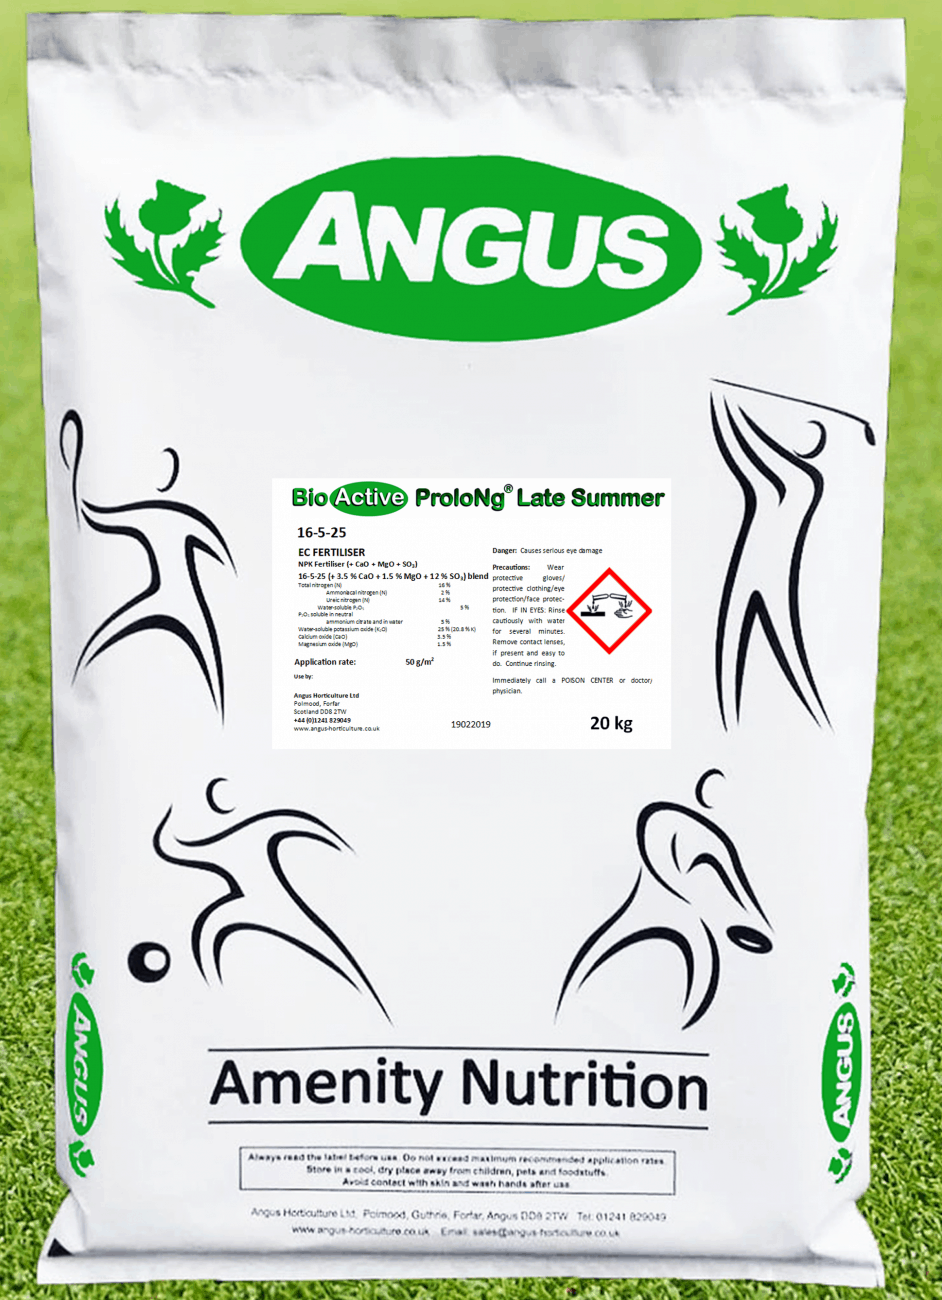 Product image of BioActive ProloNg® Late Summer 16-5-25